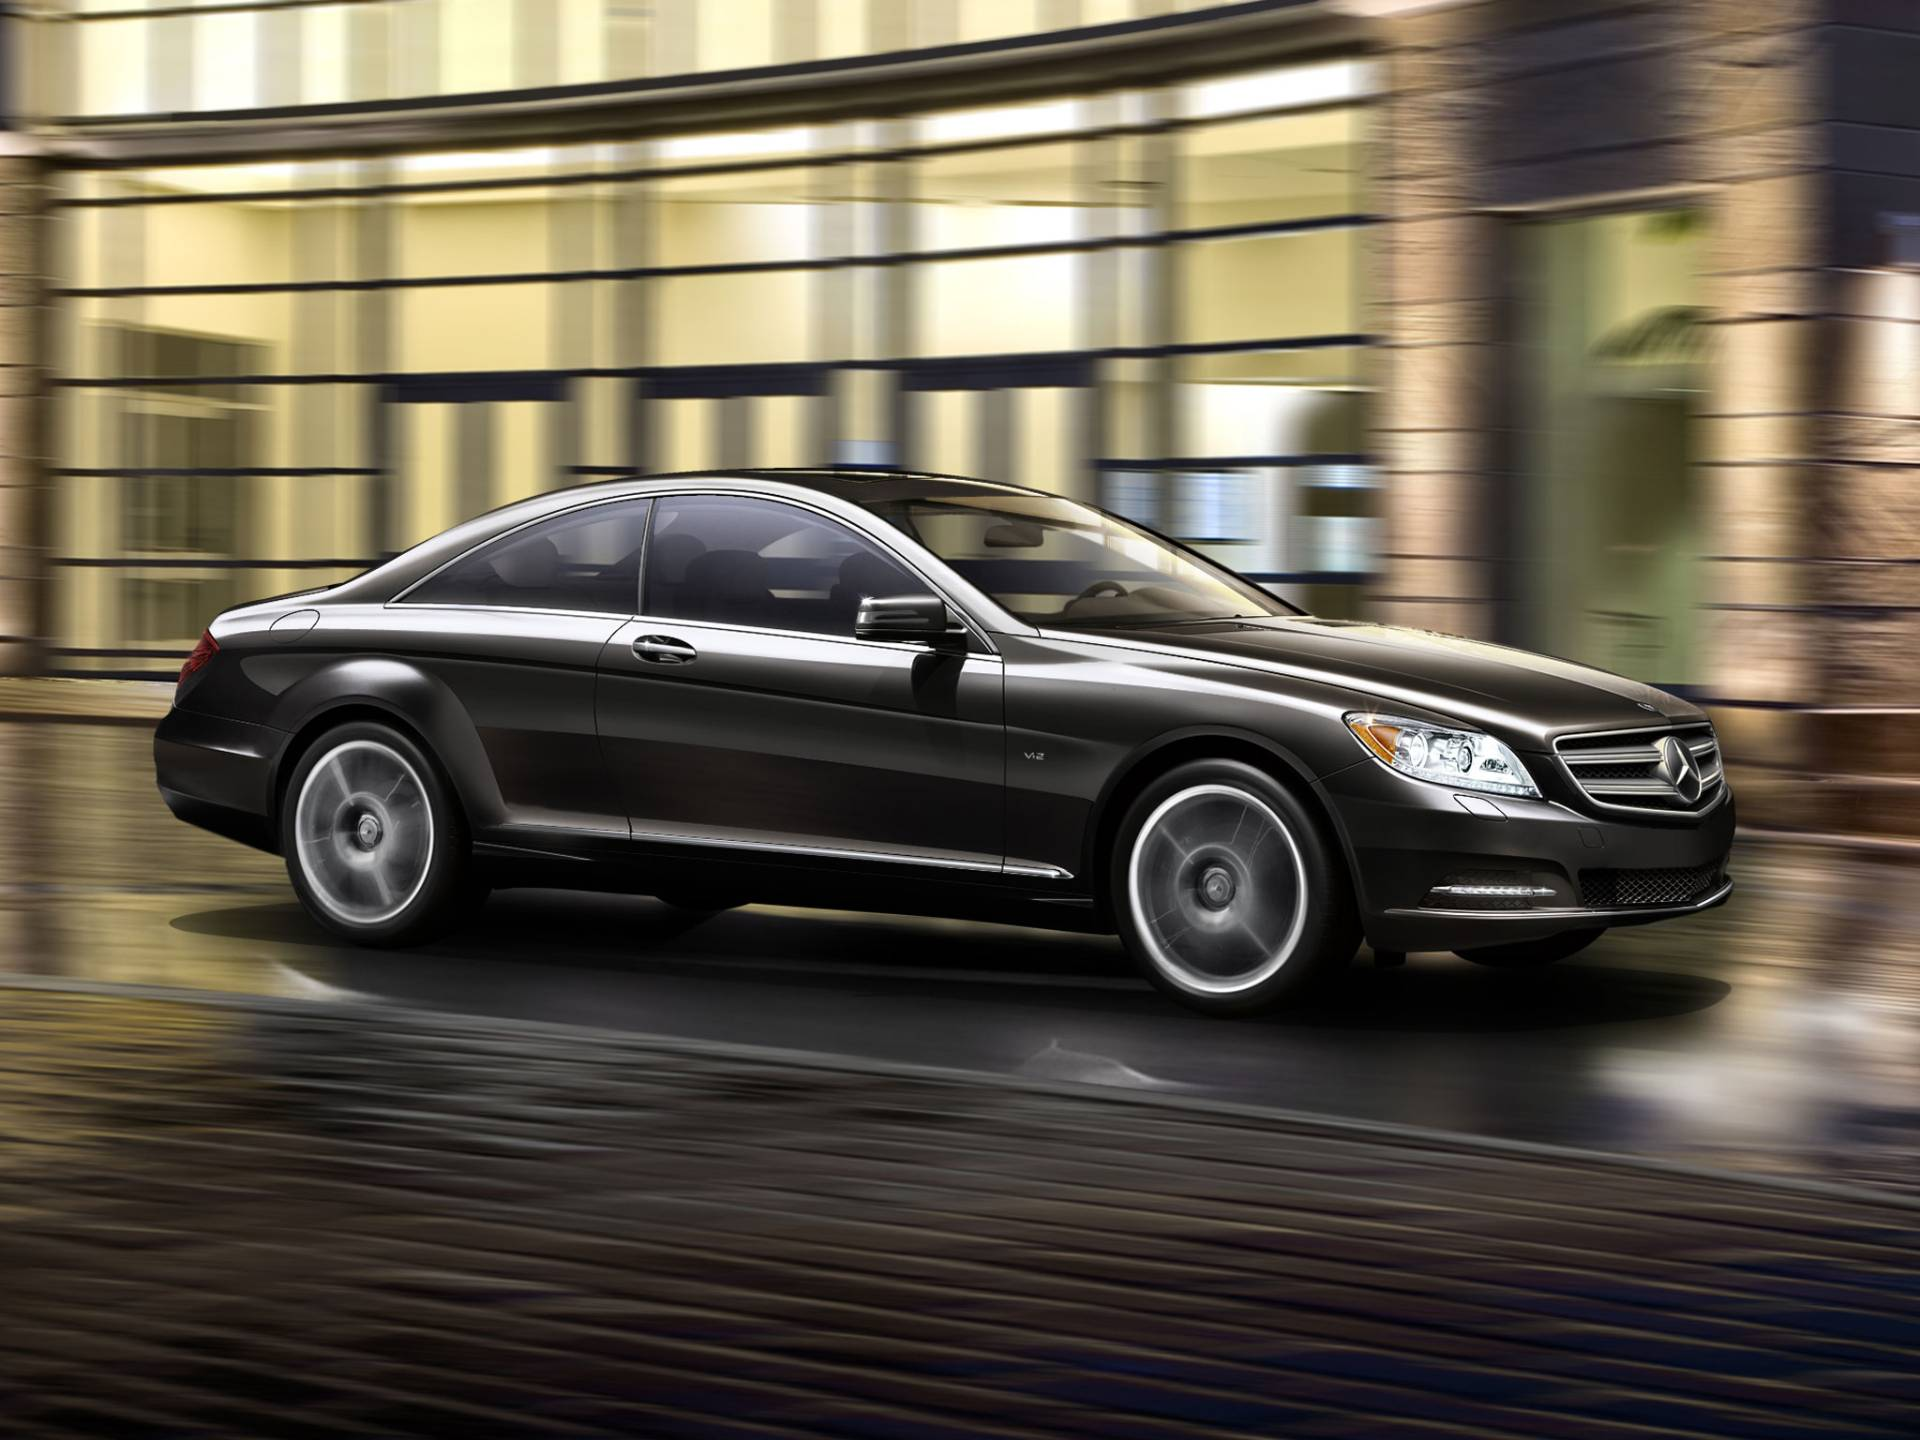 2013 cl 600 v12 gallery for Mercedes benz 600 price